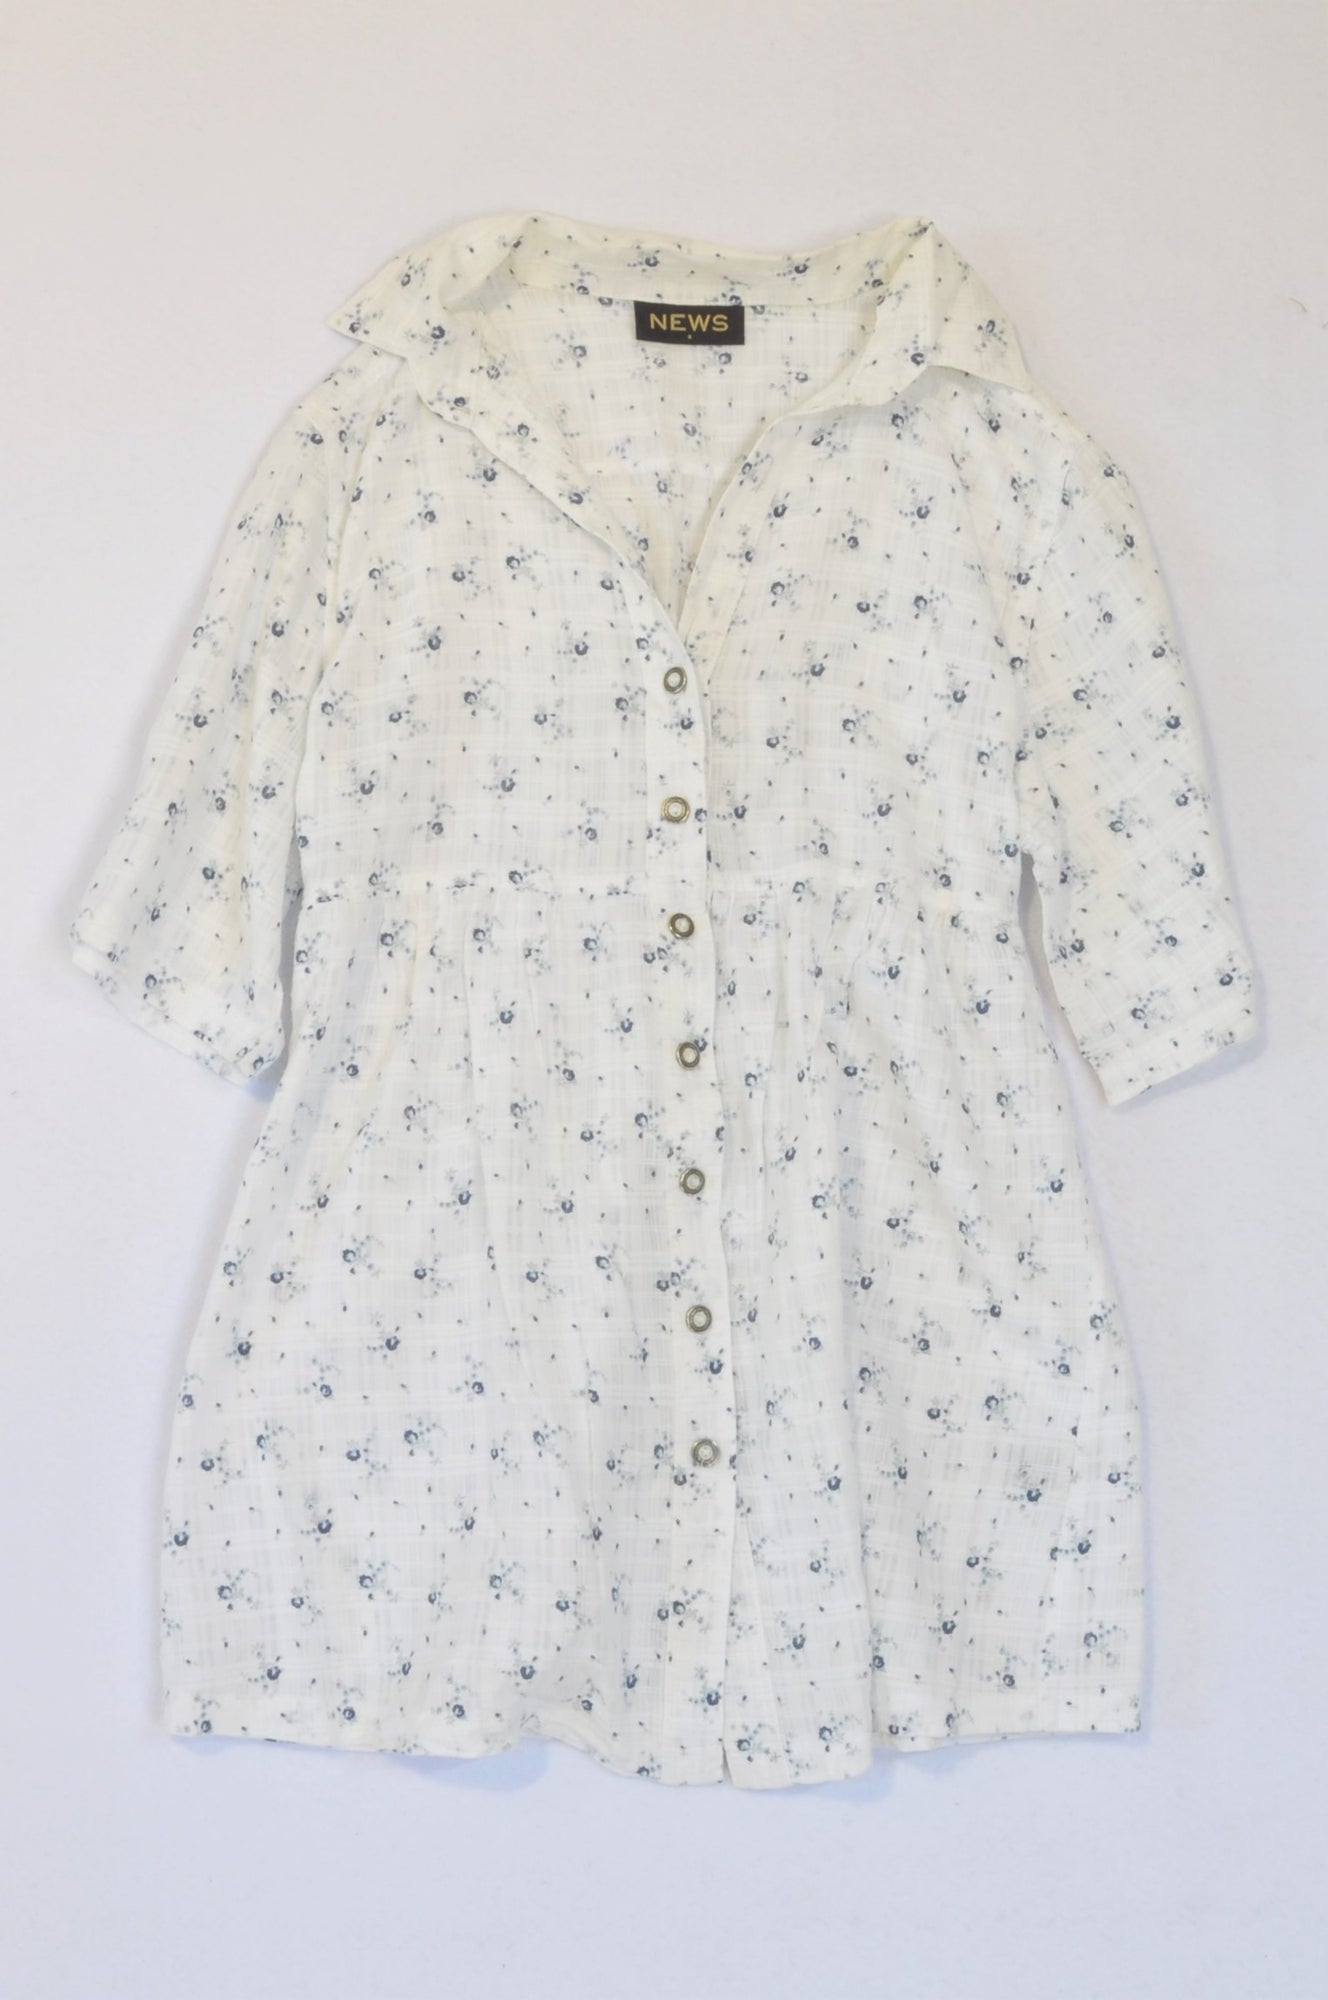 News White With Blue Flower Detail Button Up Shirt Women Size 8